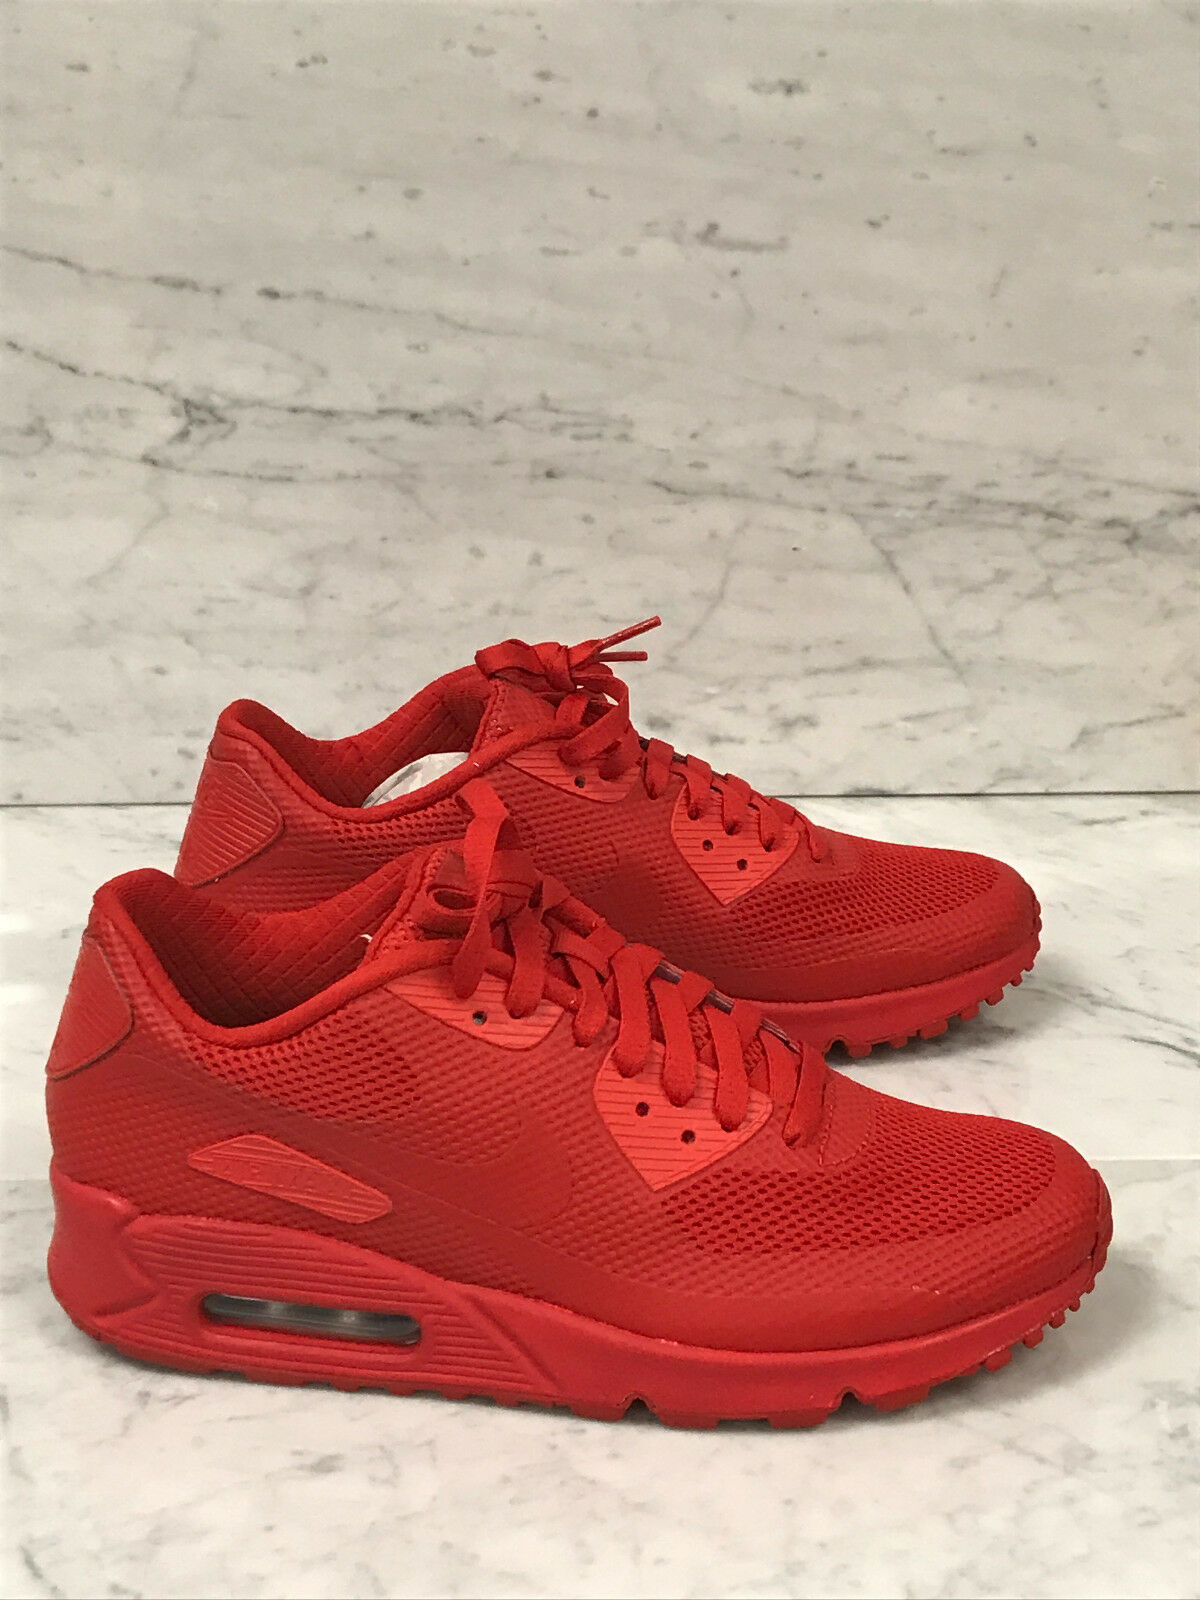 Nike Air Max 90 Hyperfuse Gym Red HYP PRM 100% Authentic University